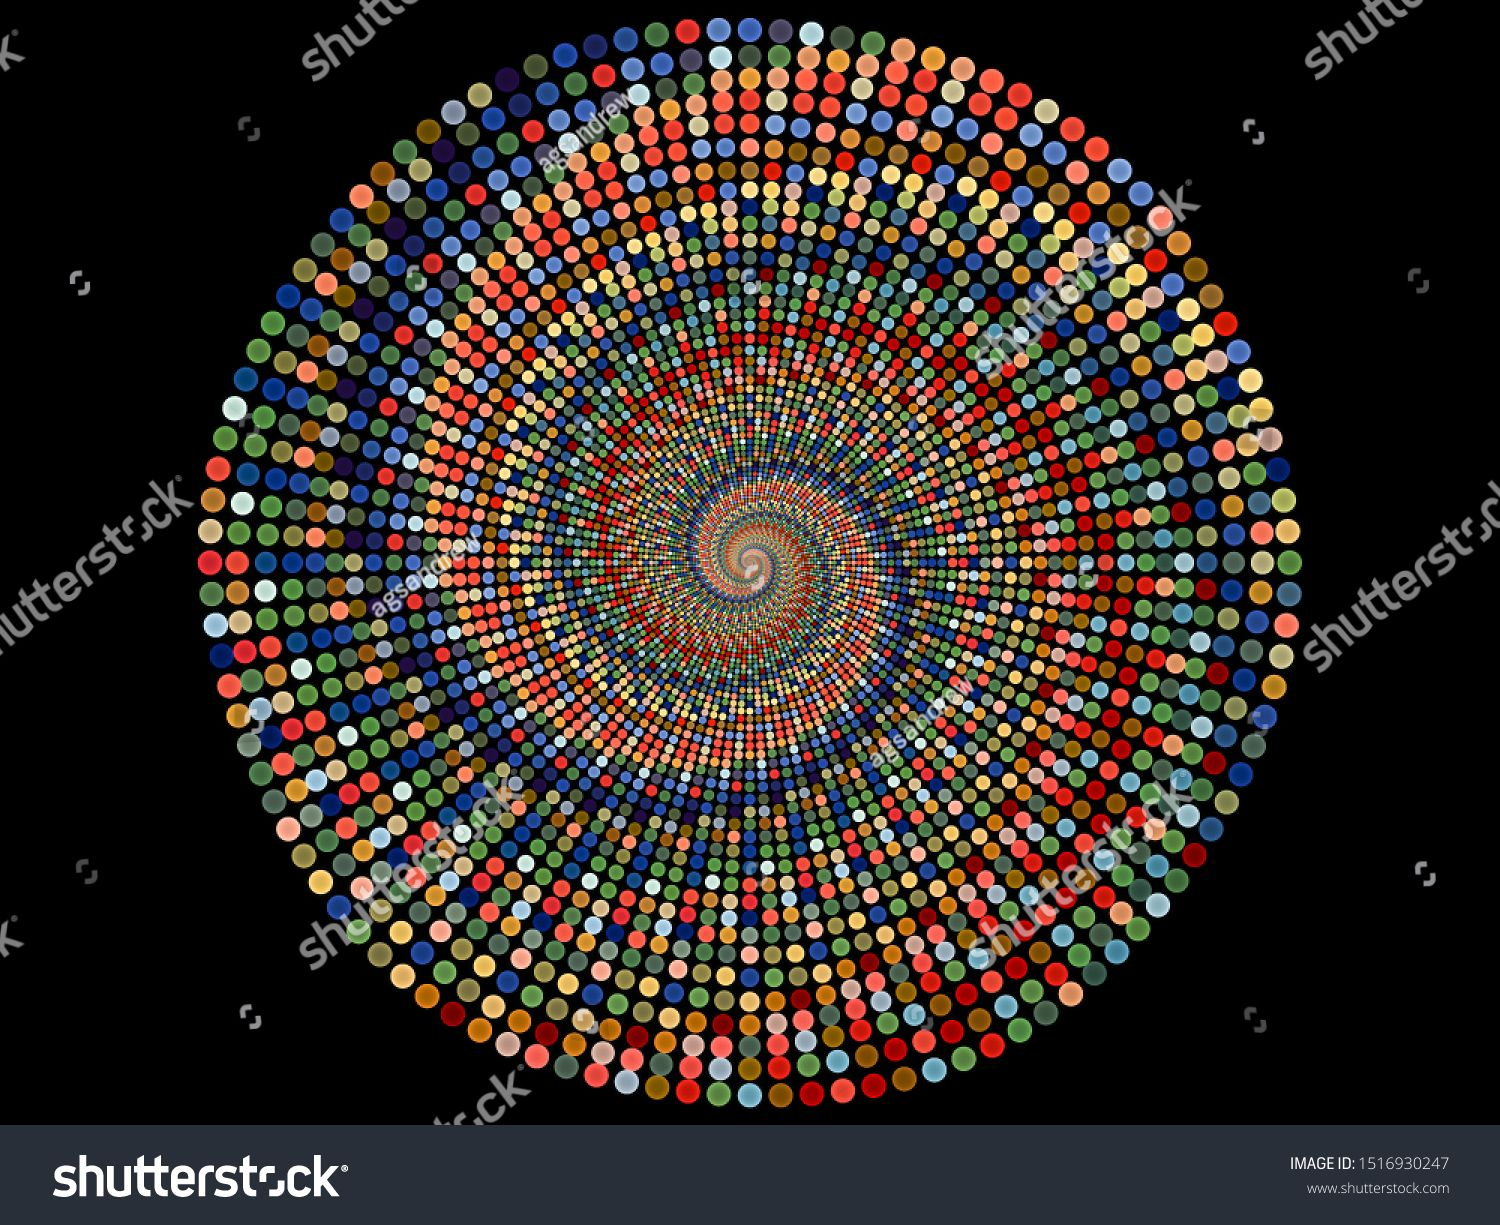 Background Of Small Circles On Tight Spiral Pattern On The Subject